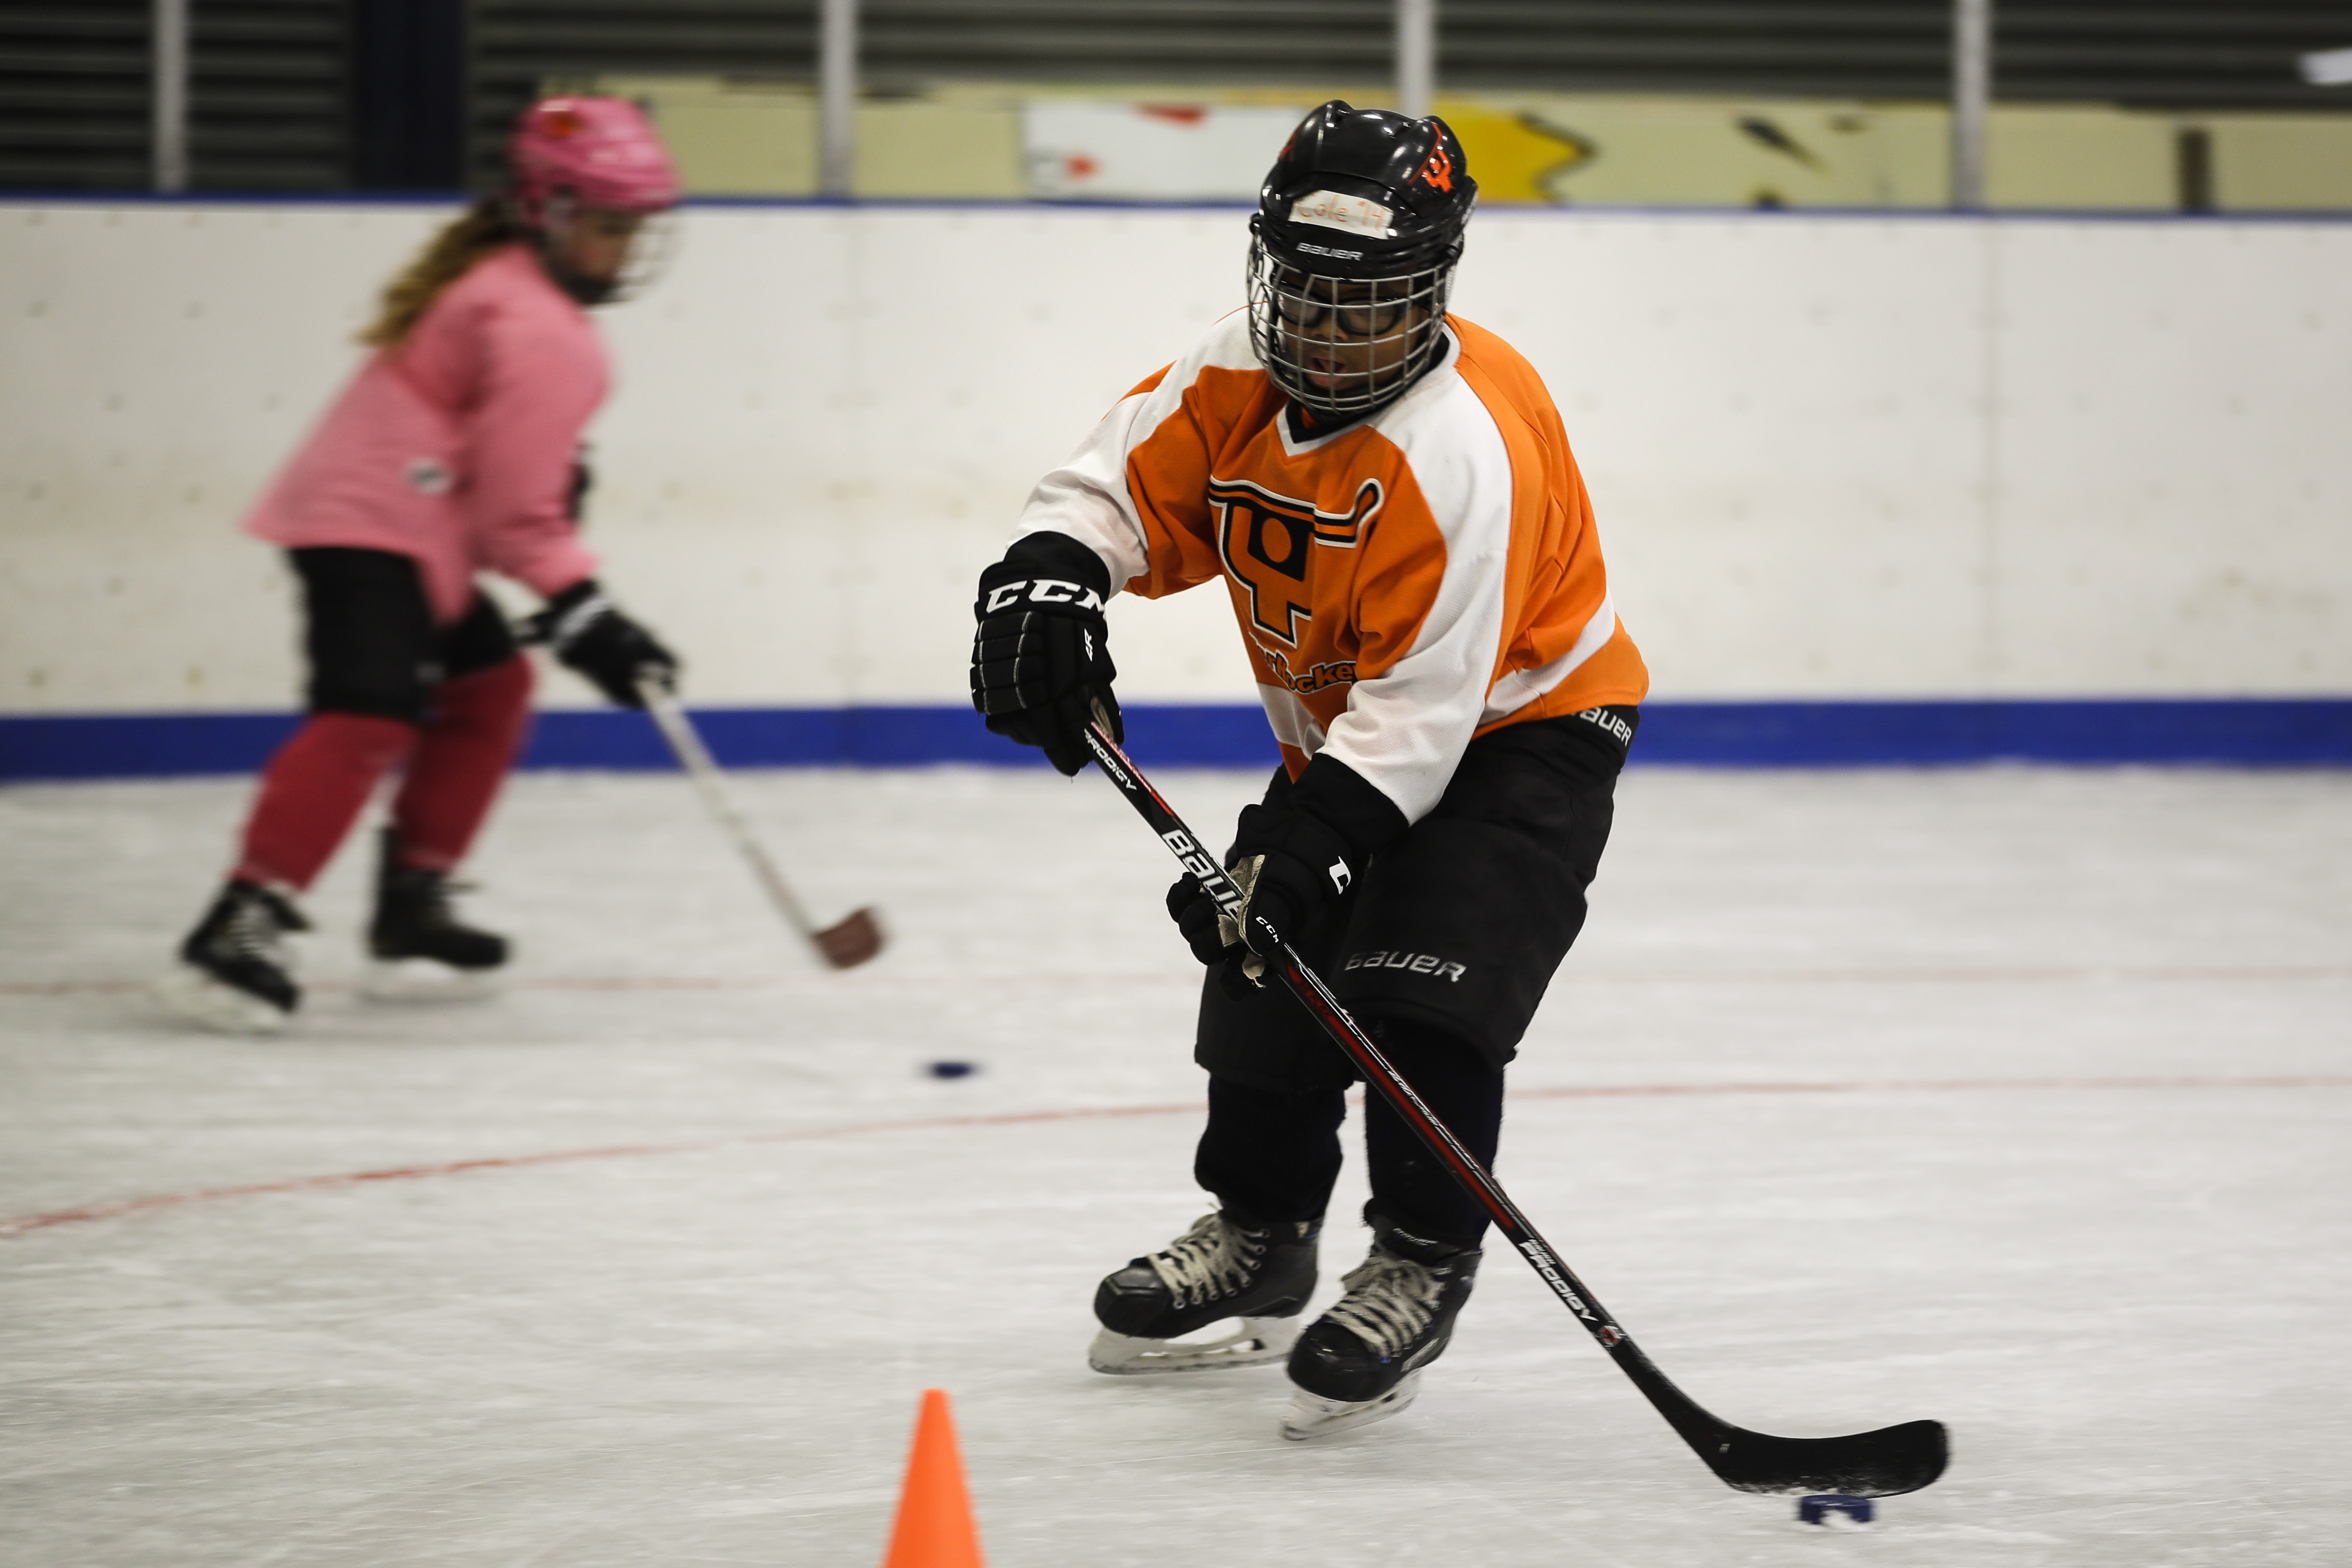 In city centers, a determined effort to diversify hockey